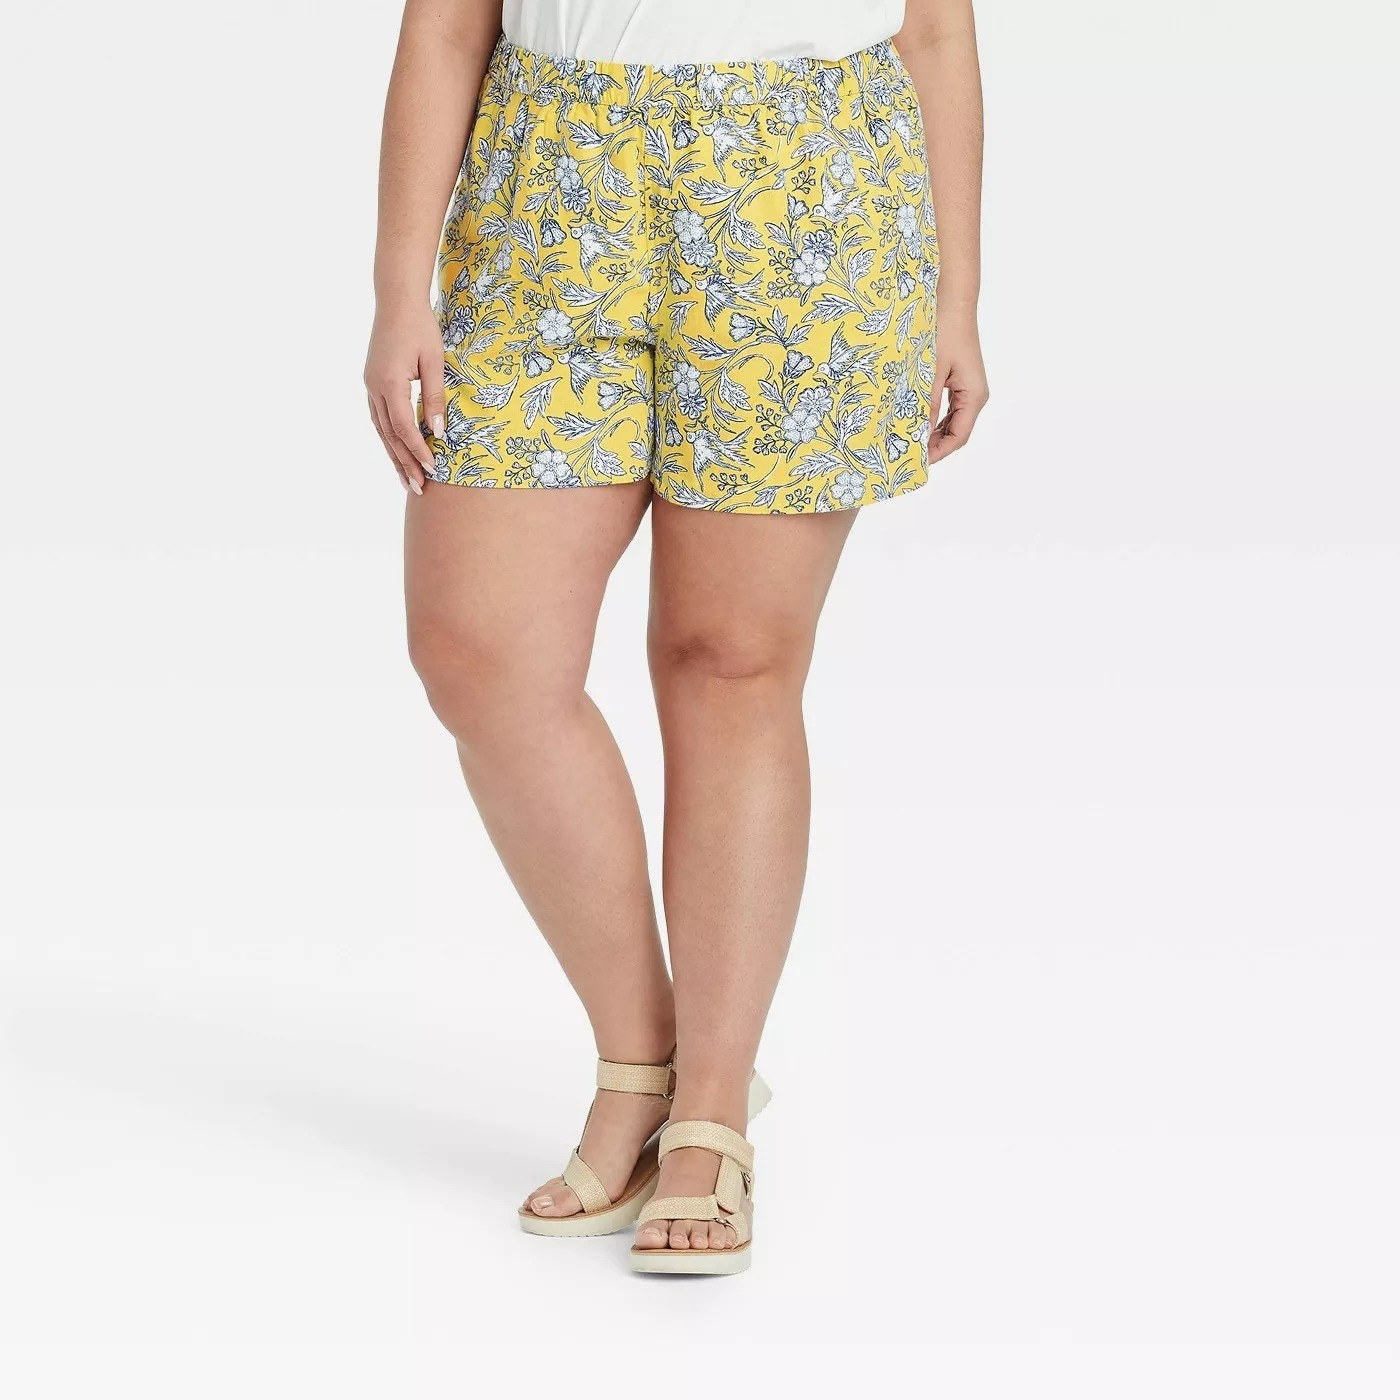 Model wearing floral patterned shorts in yellow, stops midthigh